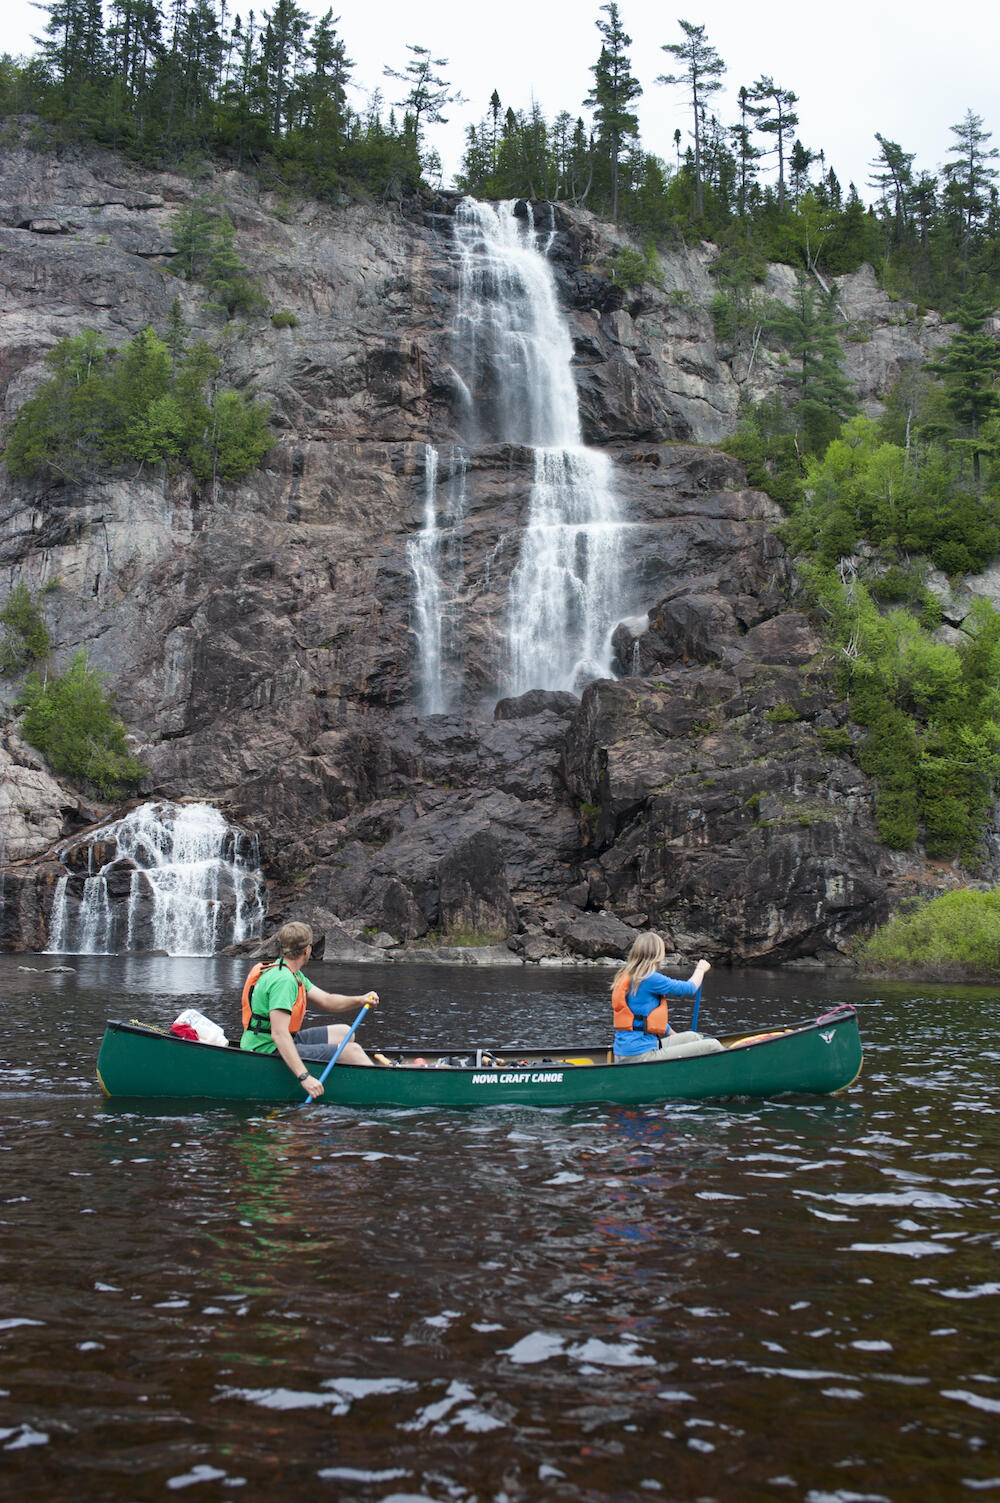 People canoeing beside a waterfall